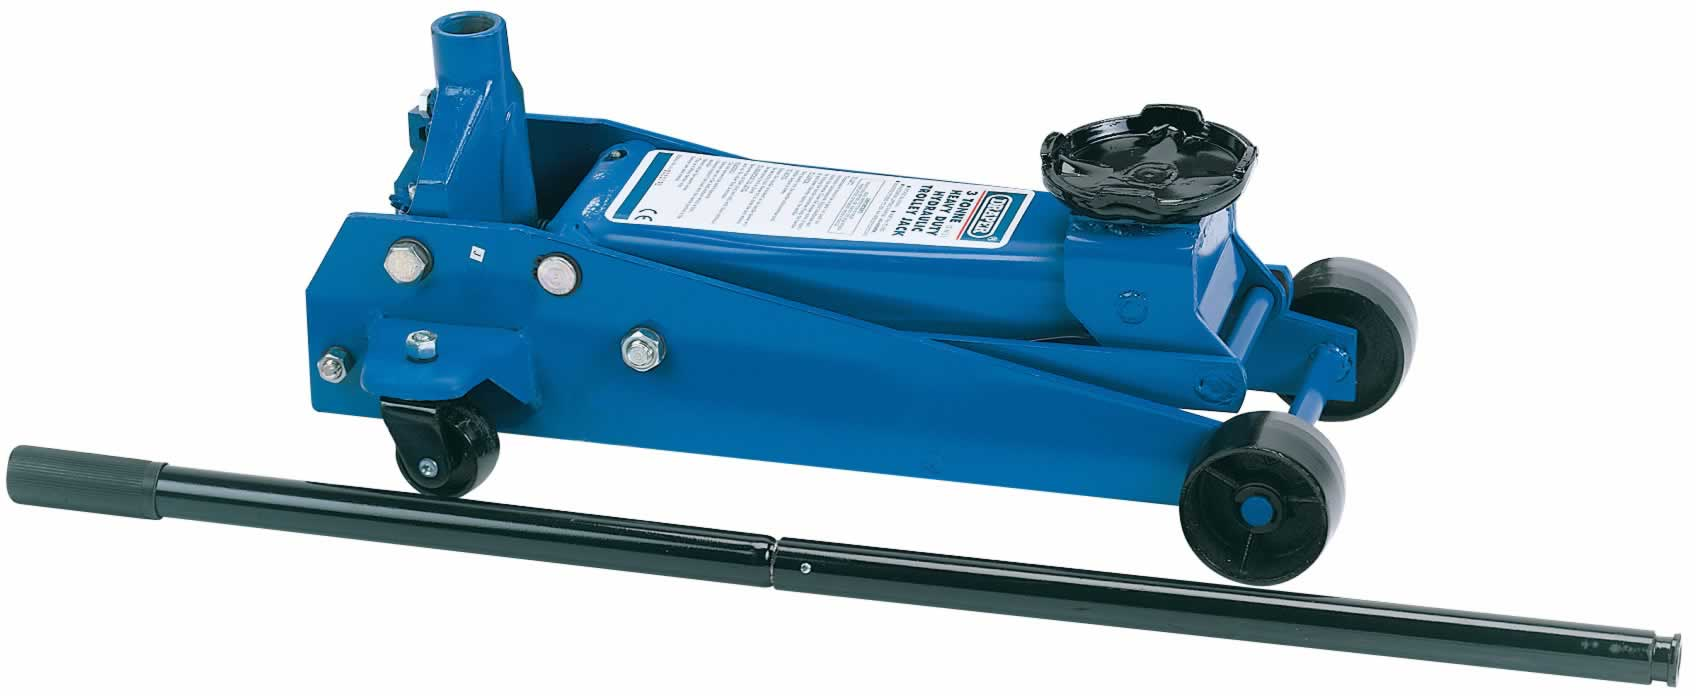 3 TONNE HEAVY DUTY GARAGE TROLLEY JACK